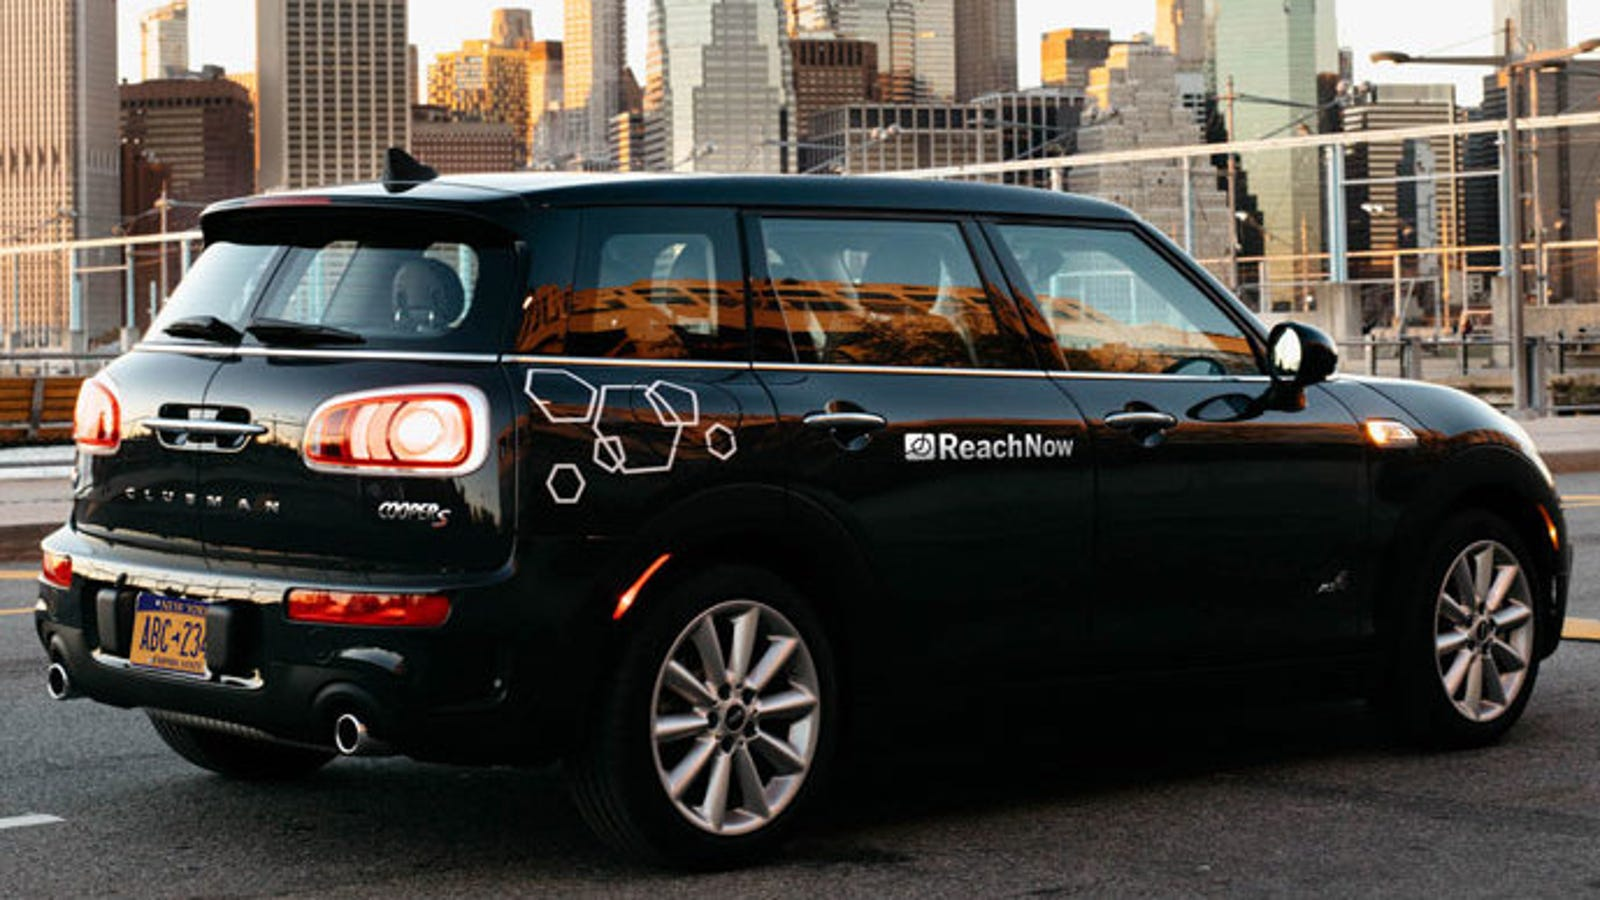 BMWs ReachNow Car Sharing Service Is Mostly Dead In Its